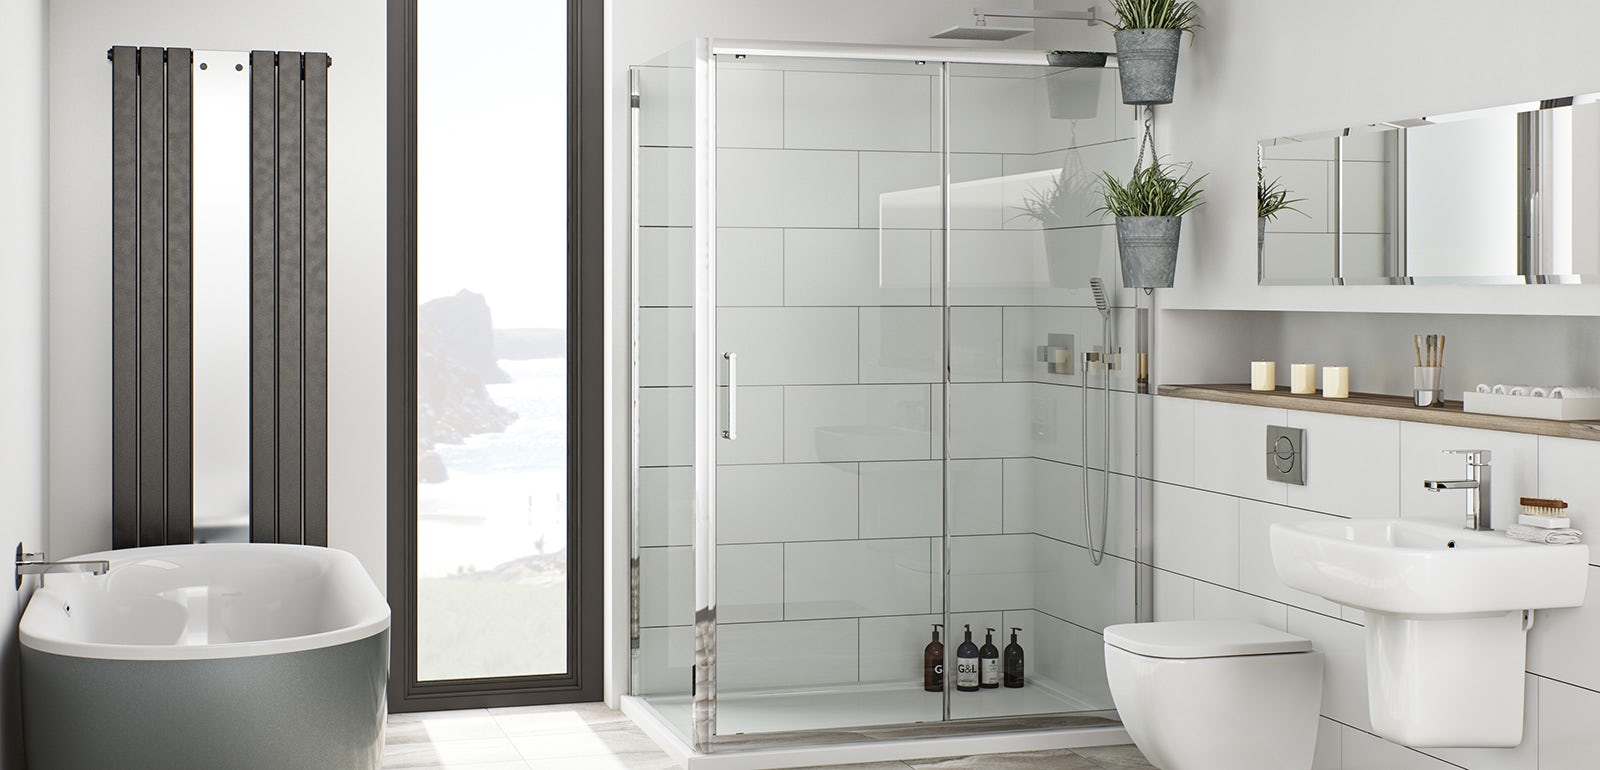 Introducing our new bathroom collections